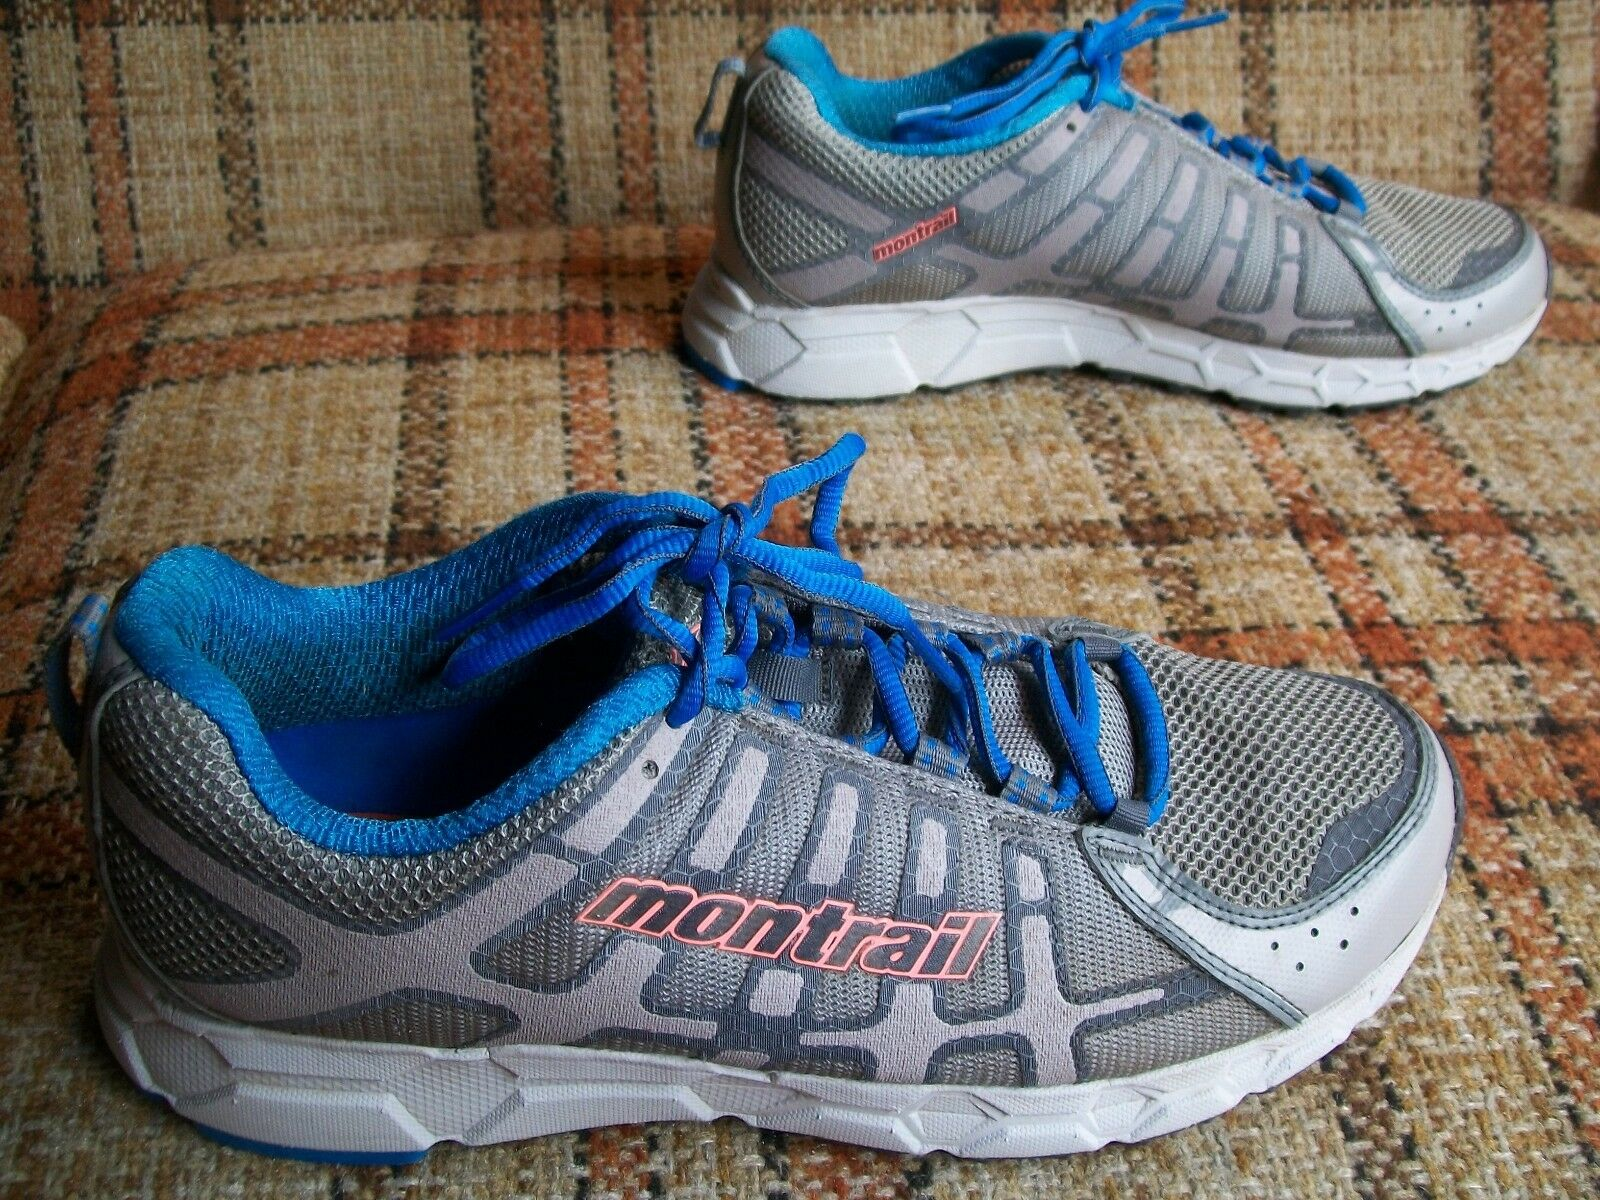 Montrail Womens Size 10 () Running Trail shoes GL2167-081